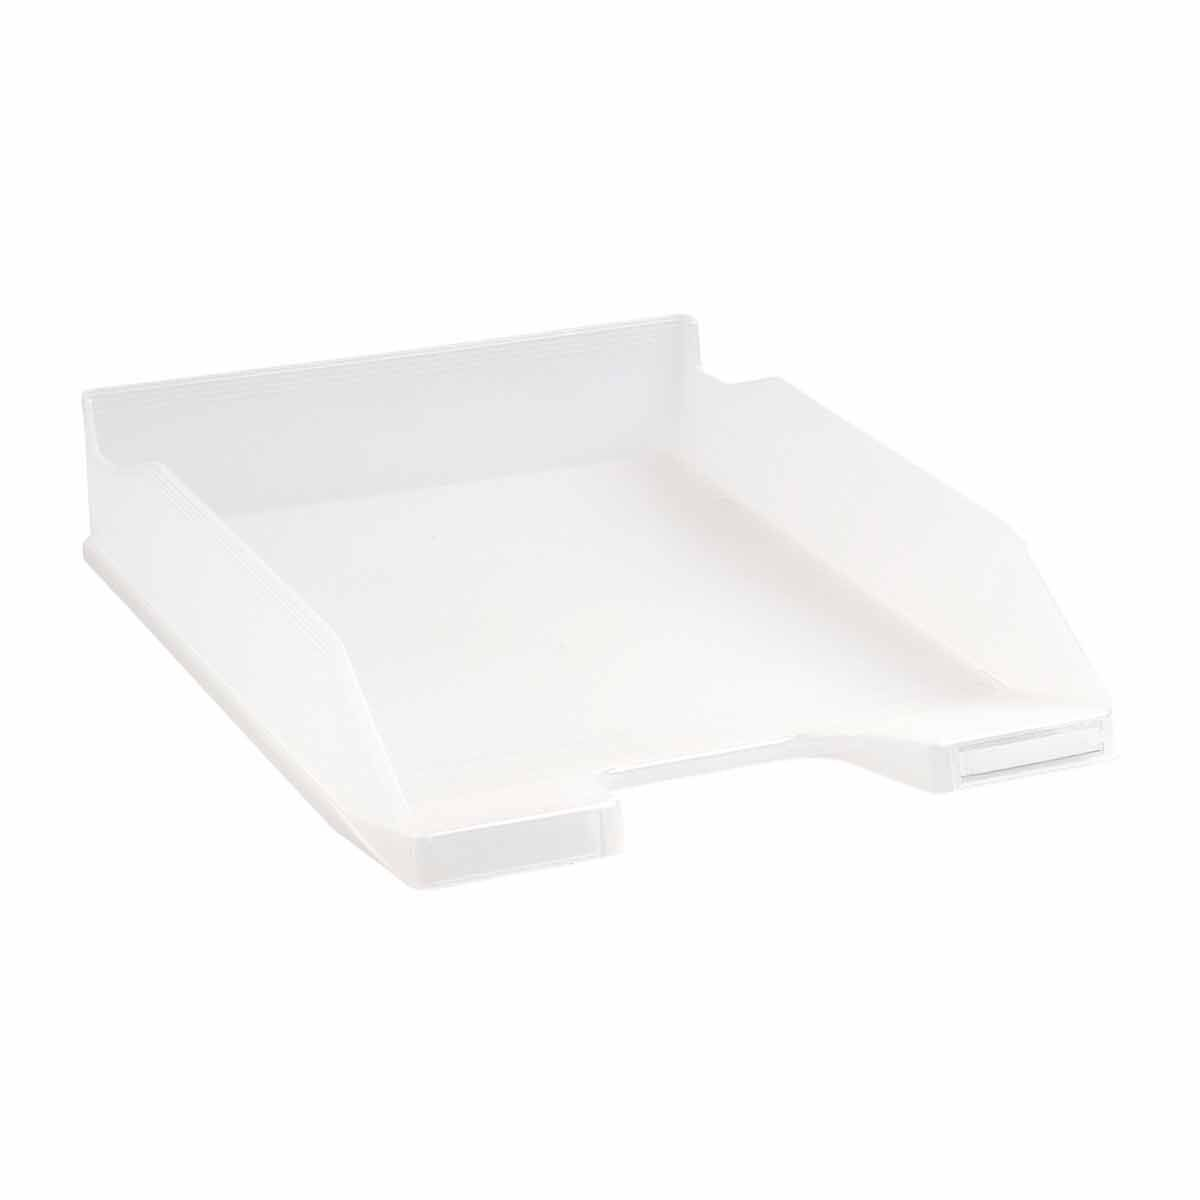 Exacompta Office Letter Tray Midi Combo Pack of 6 Translucent